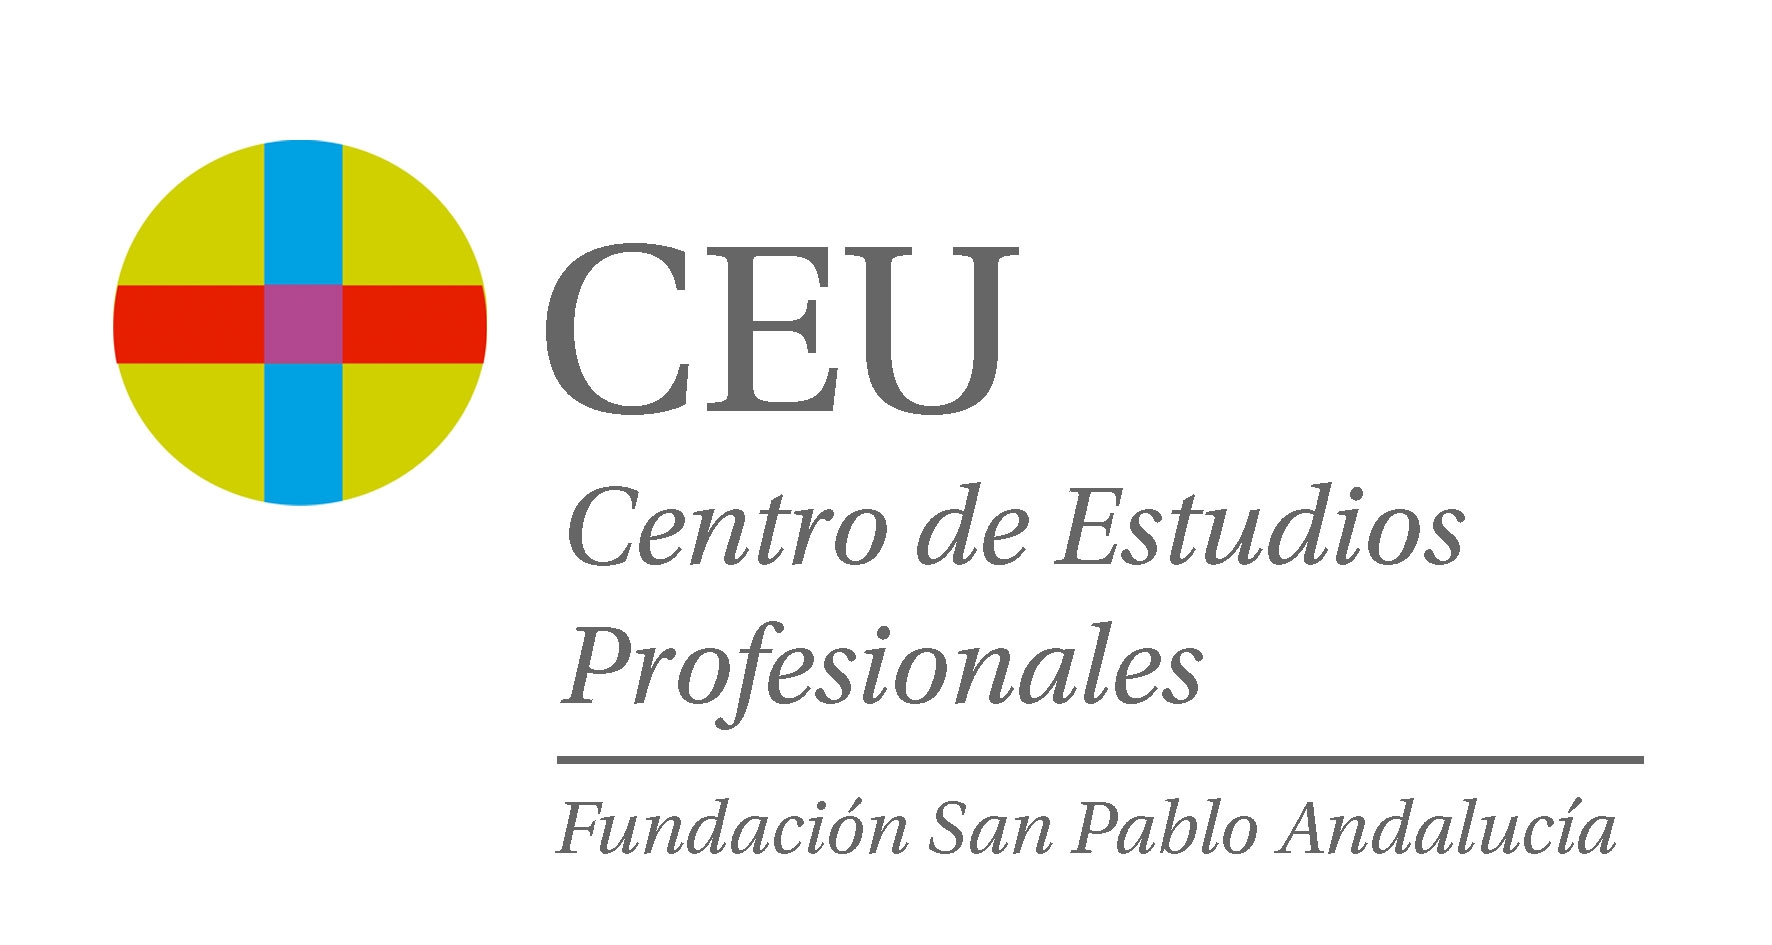 Fundación San Pablo Andalucía CEU